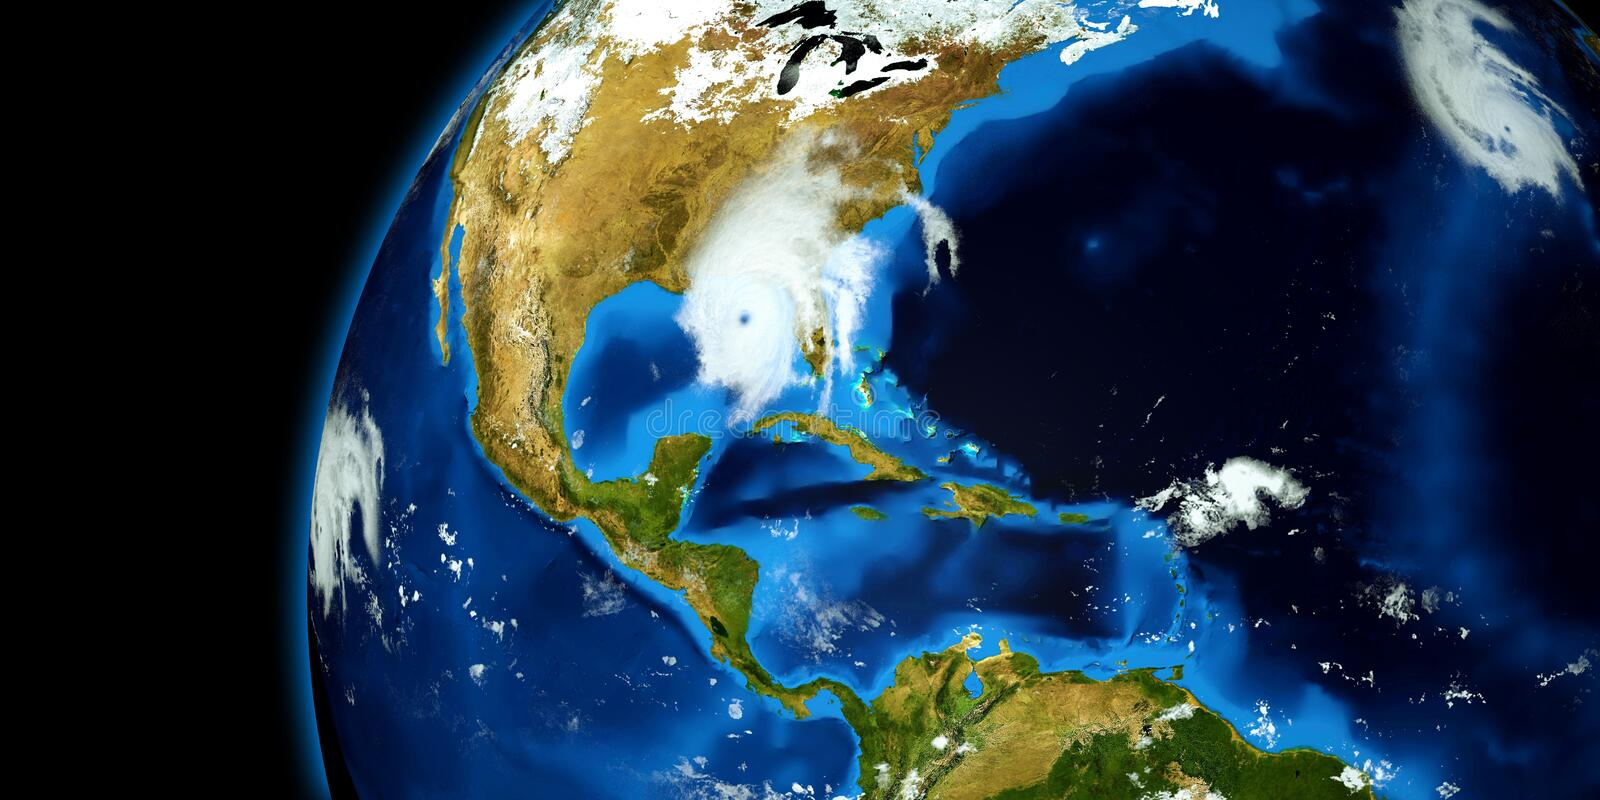 Extremely detailed and realistic high resolution 3D illustration of a Hurricane. Shot from Space. Elements of this image are furni. Extremely detailed and royalty free stock photography